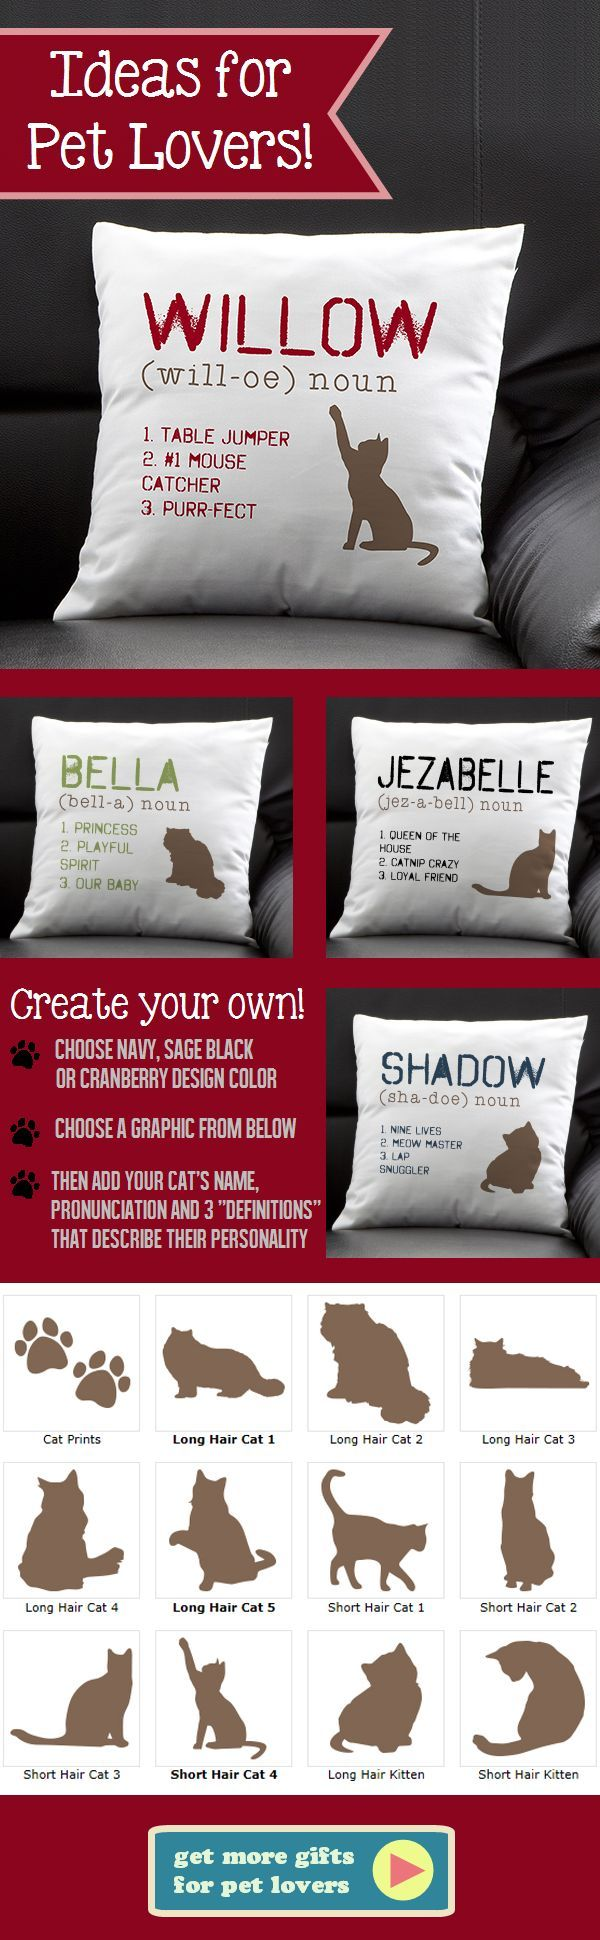 """This pillow is so cute! I love how you can personalize it with your own cat's name """"pronunciation"""" and """"definitions"""" so you can fit it with your cat's personality perfectly! This site has the greatest pet gifts or gifts for pet lovers!"""